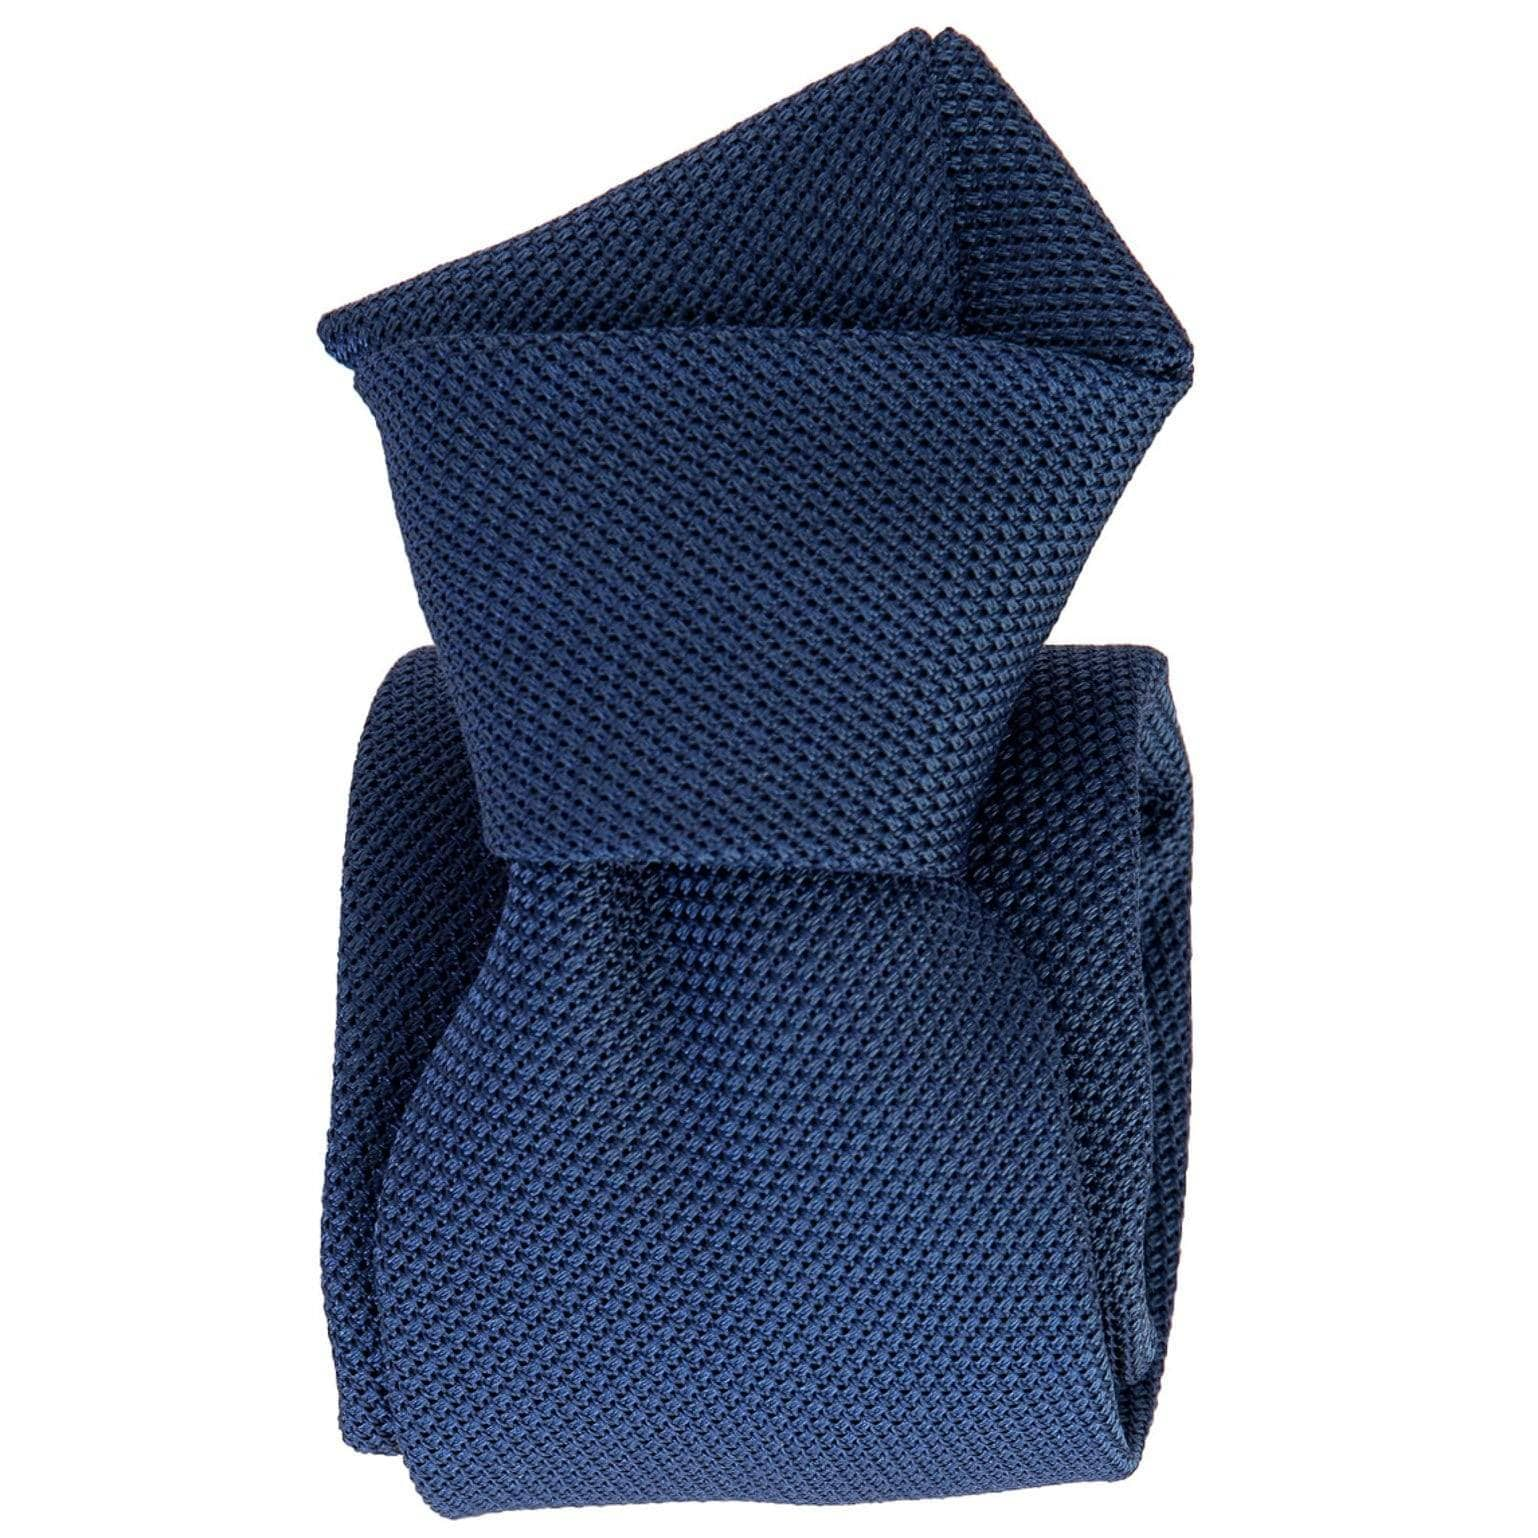 Blue Grenadine Tie - 100% Made in Italy - Garza Fina